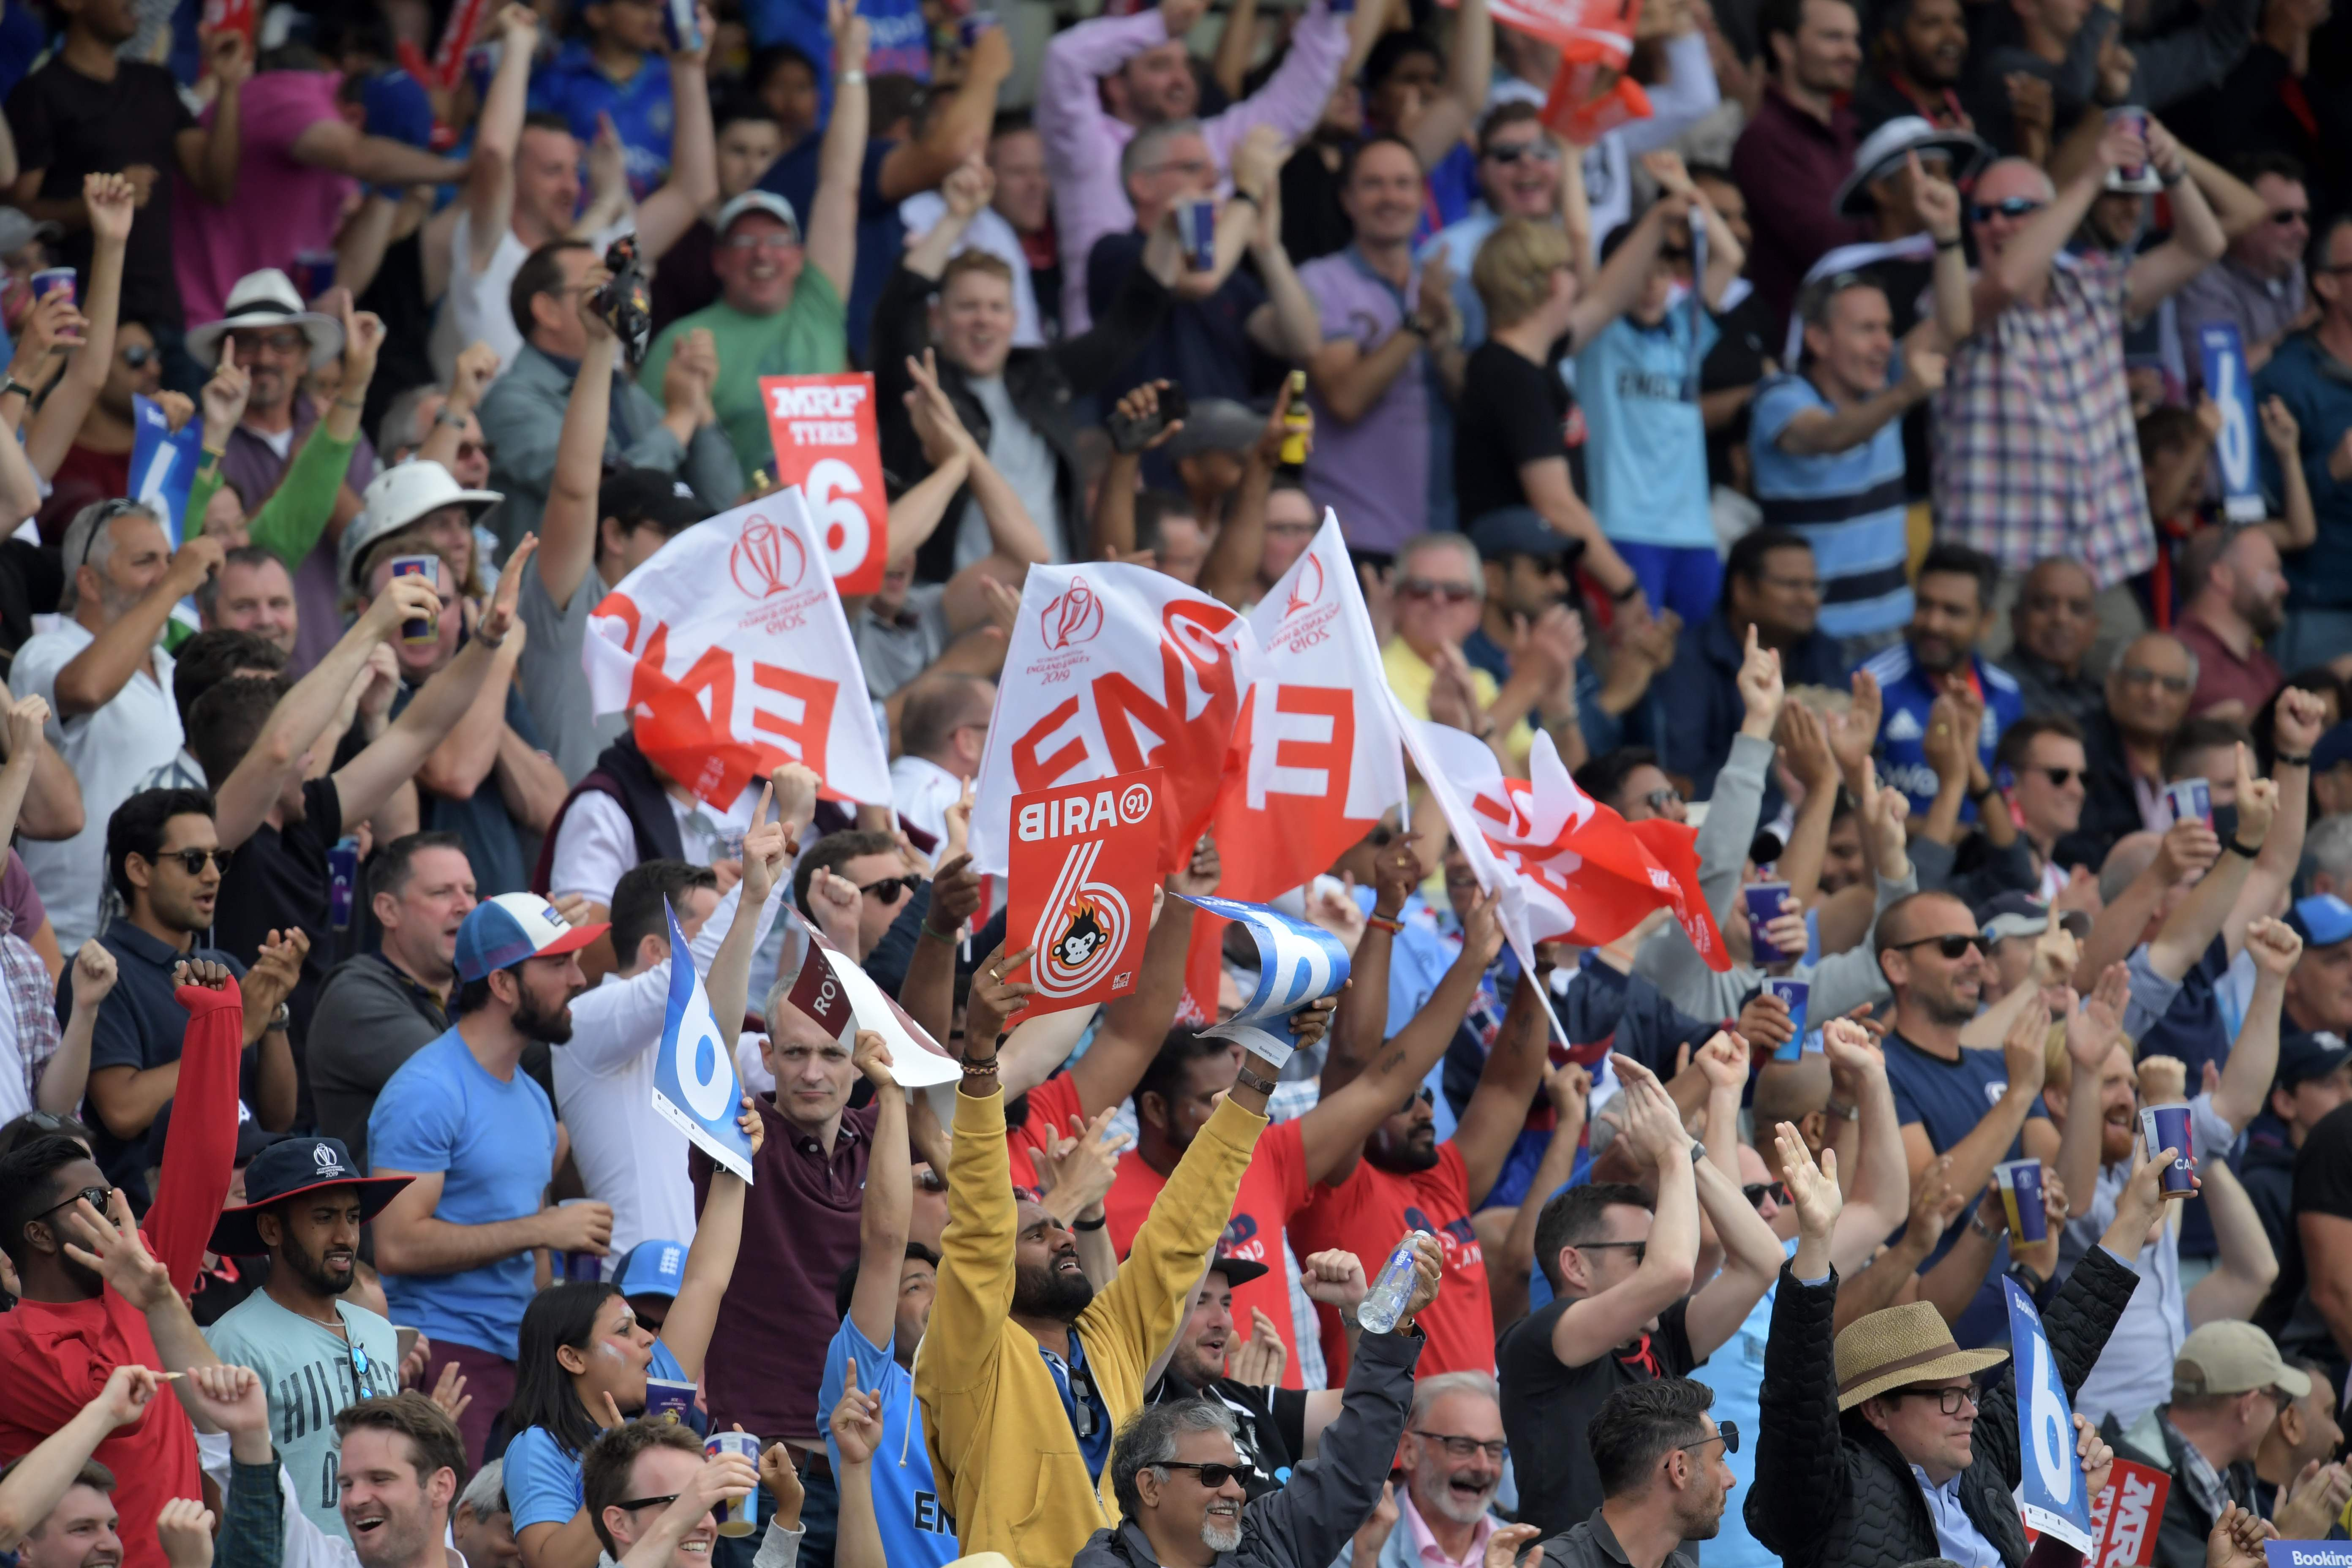 Spectators cheer during the 2019 Cricket World Cup second semi-final between England and Australia. Photo: AFP